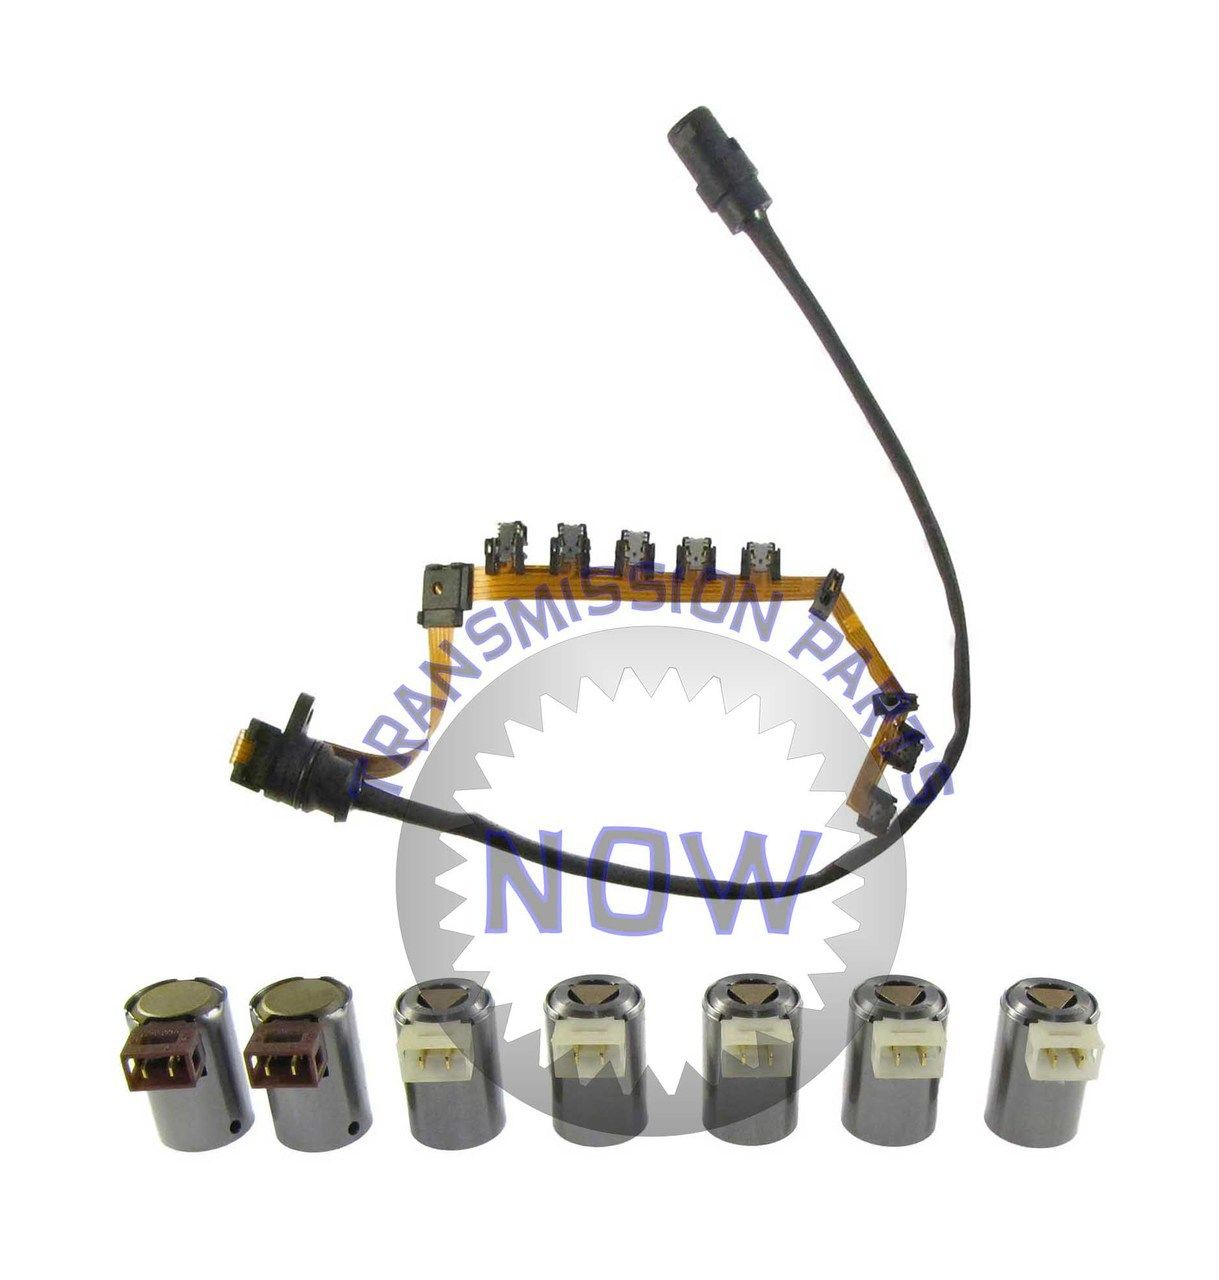 8b86a416cfa5bf8a77be8448153eca7c oe type wiring harness and 7 piece solenoid set transmission  at soozxer.org